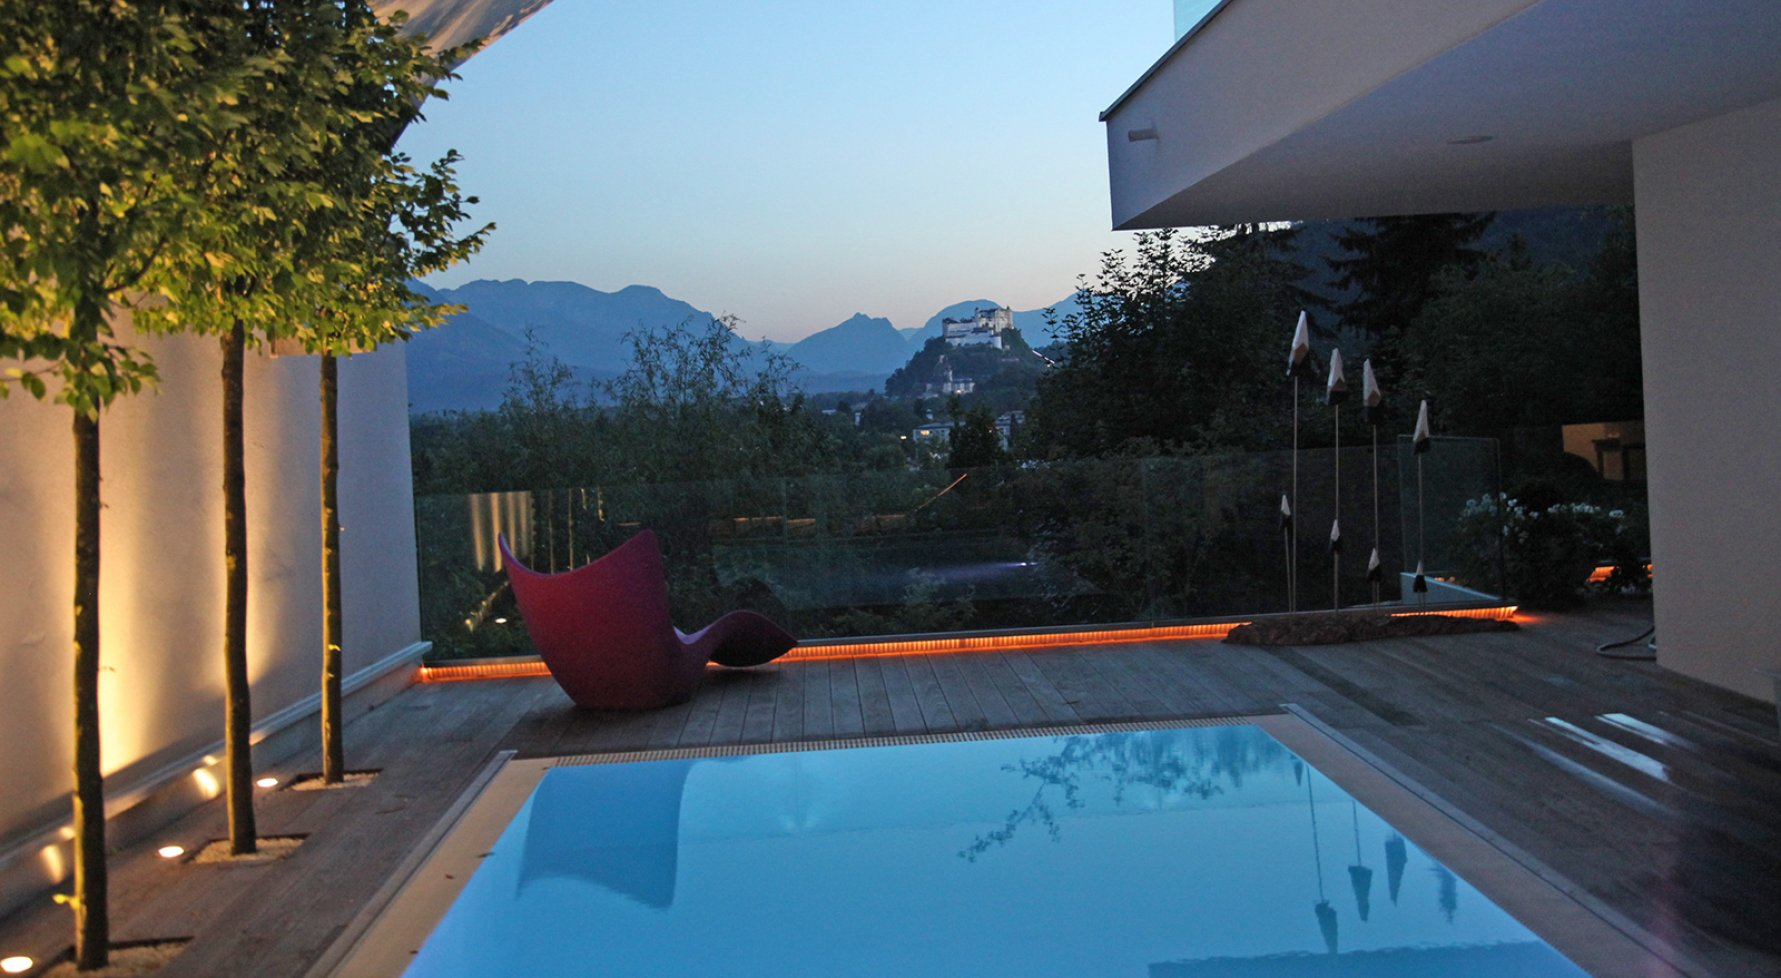 Property in 5020 Salzburg - Aigen am Fusse des Gaisbergs: QUINTESSENCE IN HILLSIDE LOCATION! Hideaway with an exquisite view - picture 1